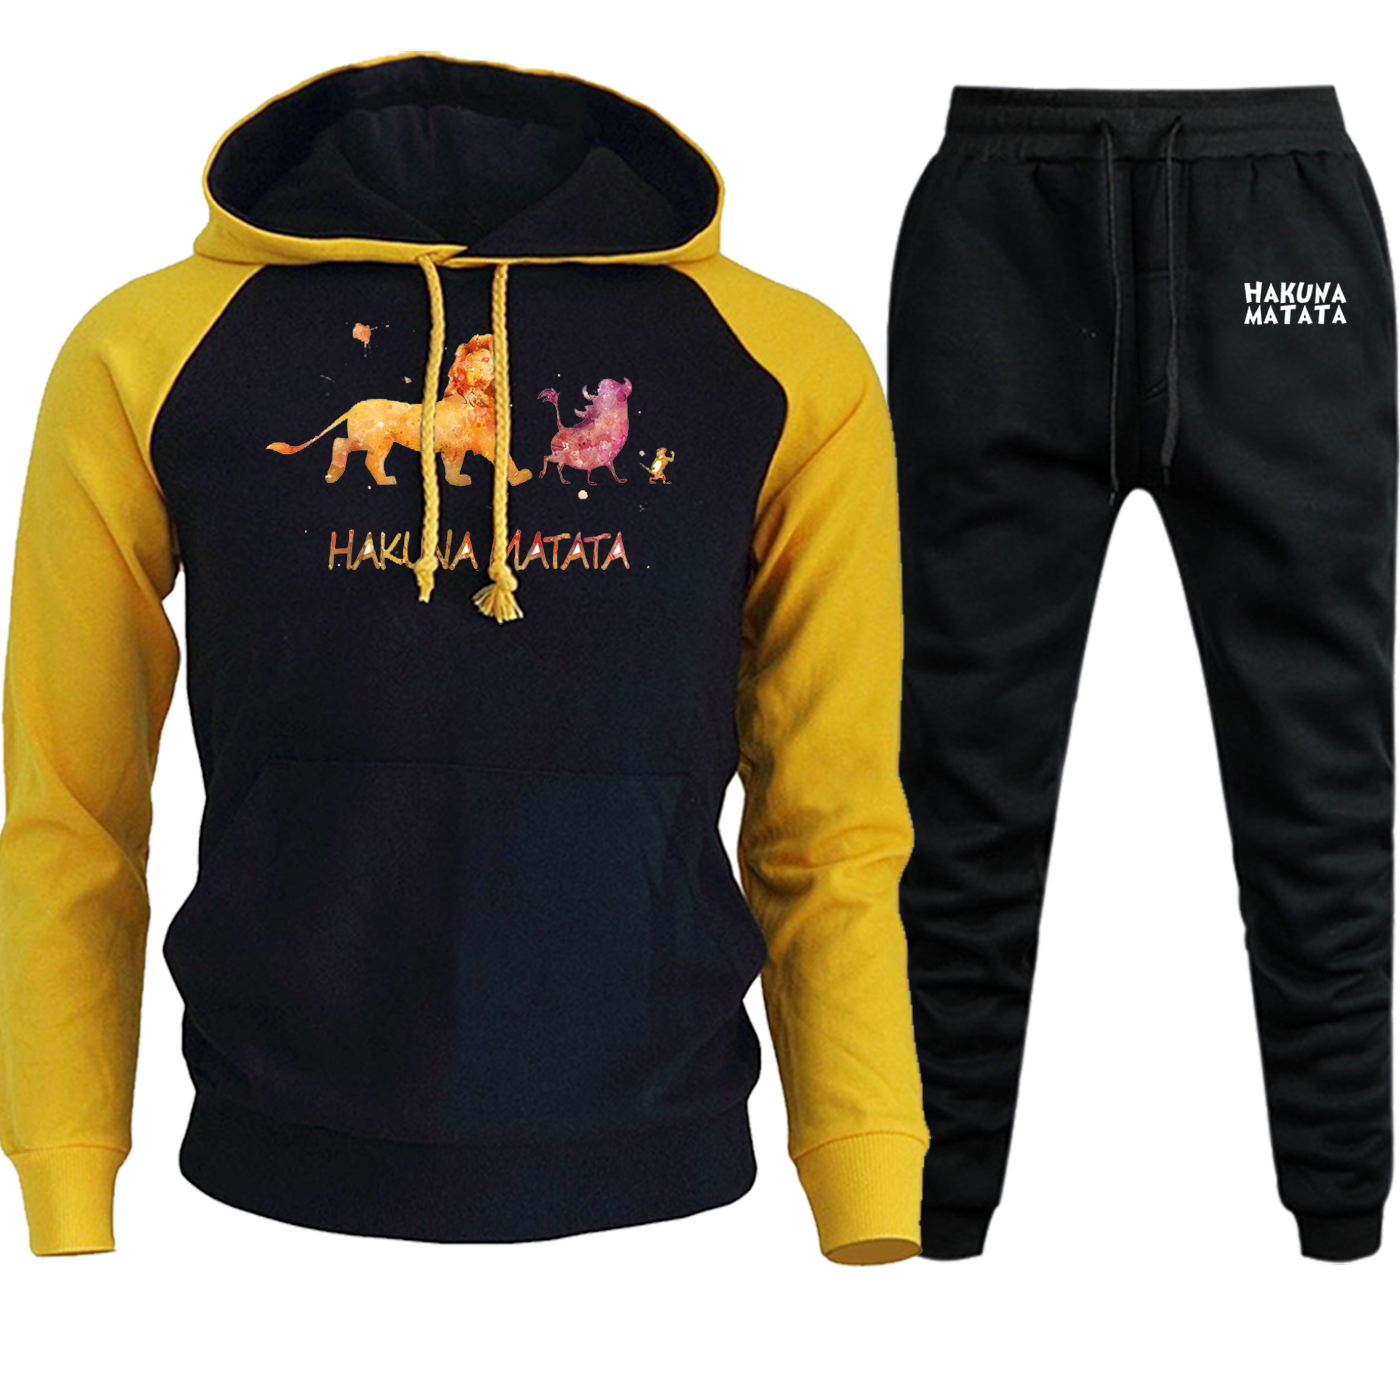 The Lion King Streetwear Cartoon Print Autumn Winter 2019 Hoodies Raglan Men Suit Casual Pullover Funny Hooded+Pants 2 Piece Set